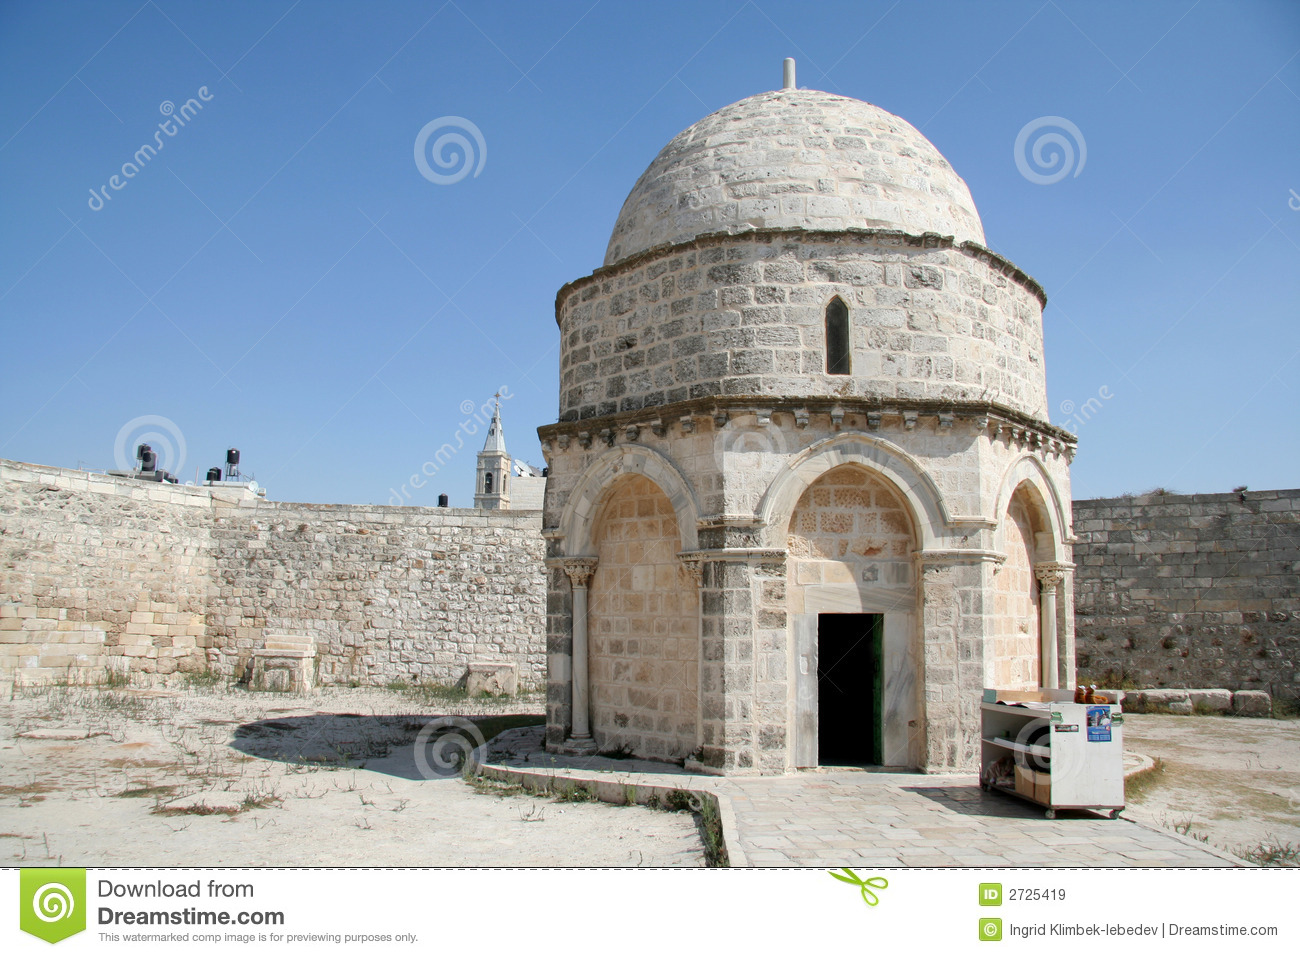 place of ascension of jesus royalty free stock images   image 2725419